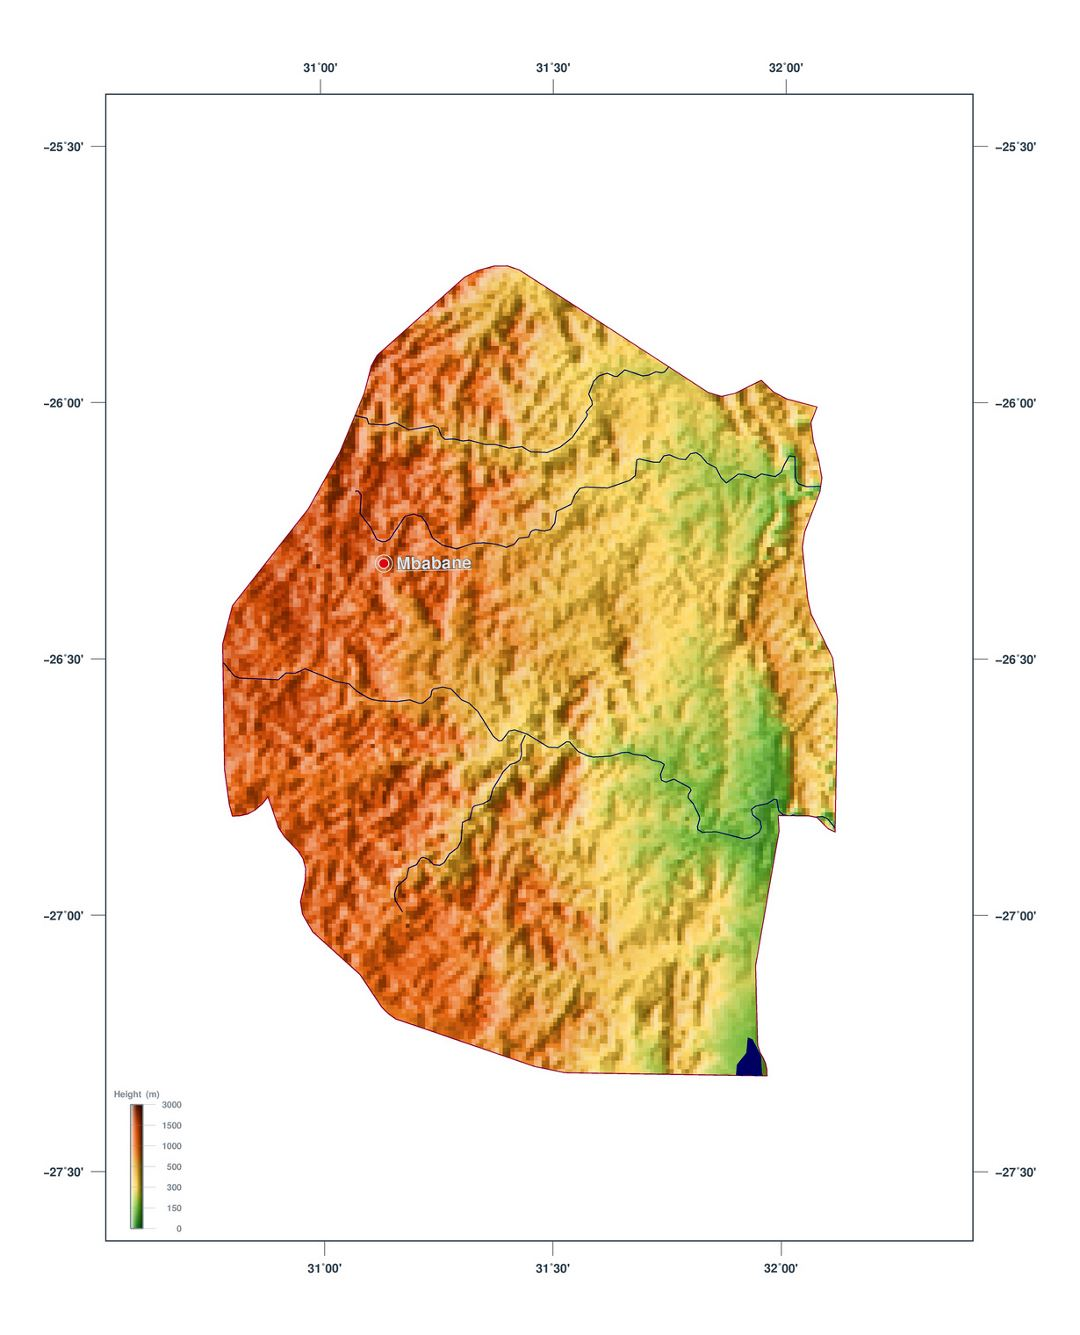 Large elevation map of Swaziland